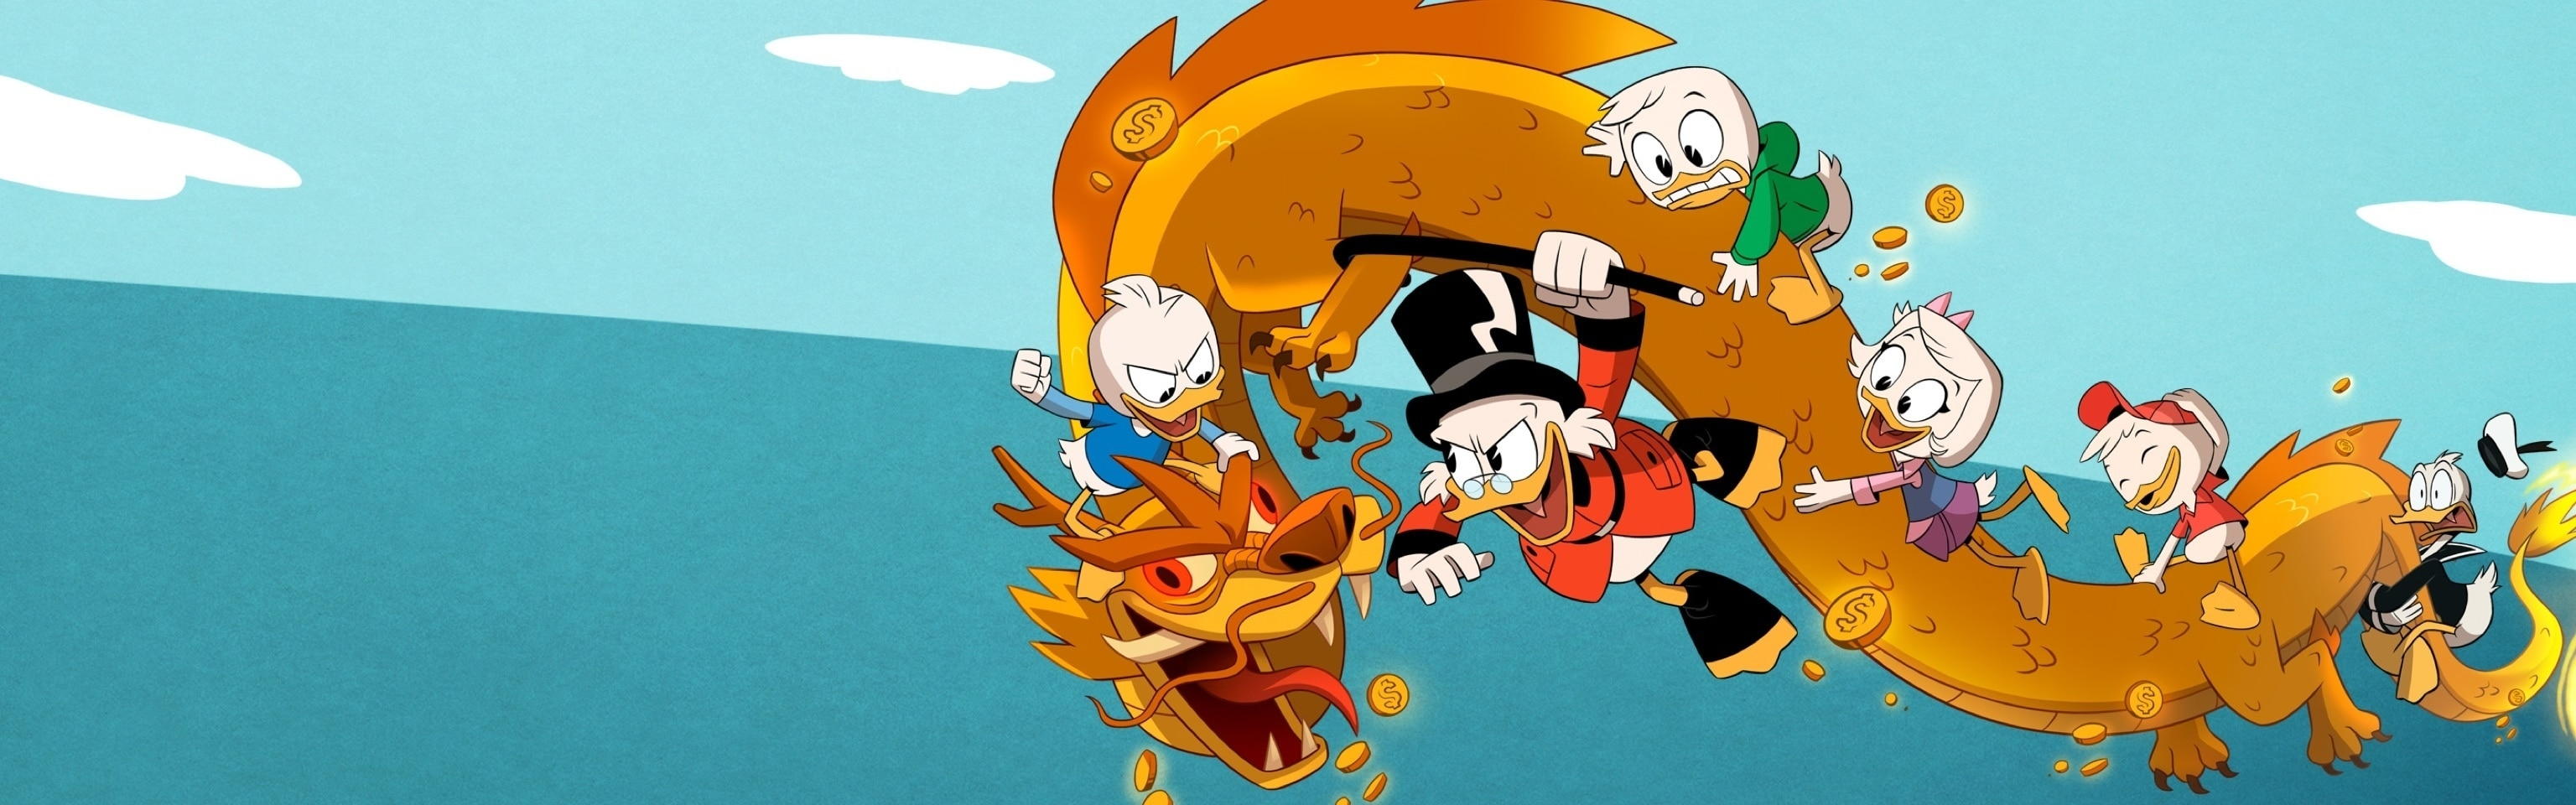 Ducktales Serie - Hero